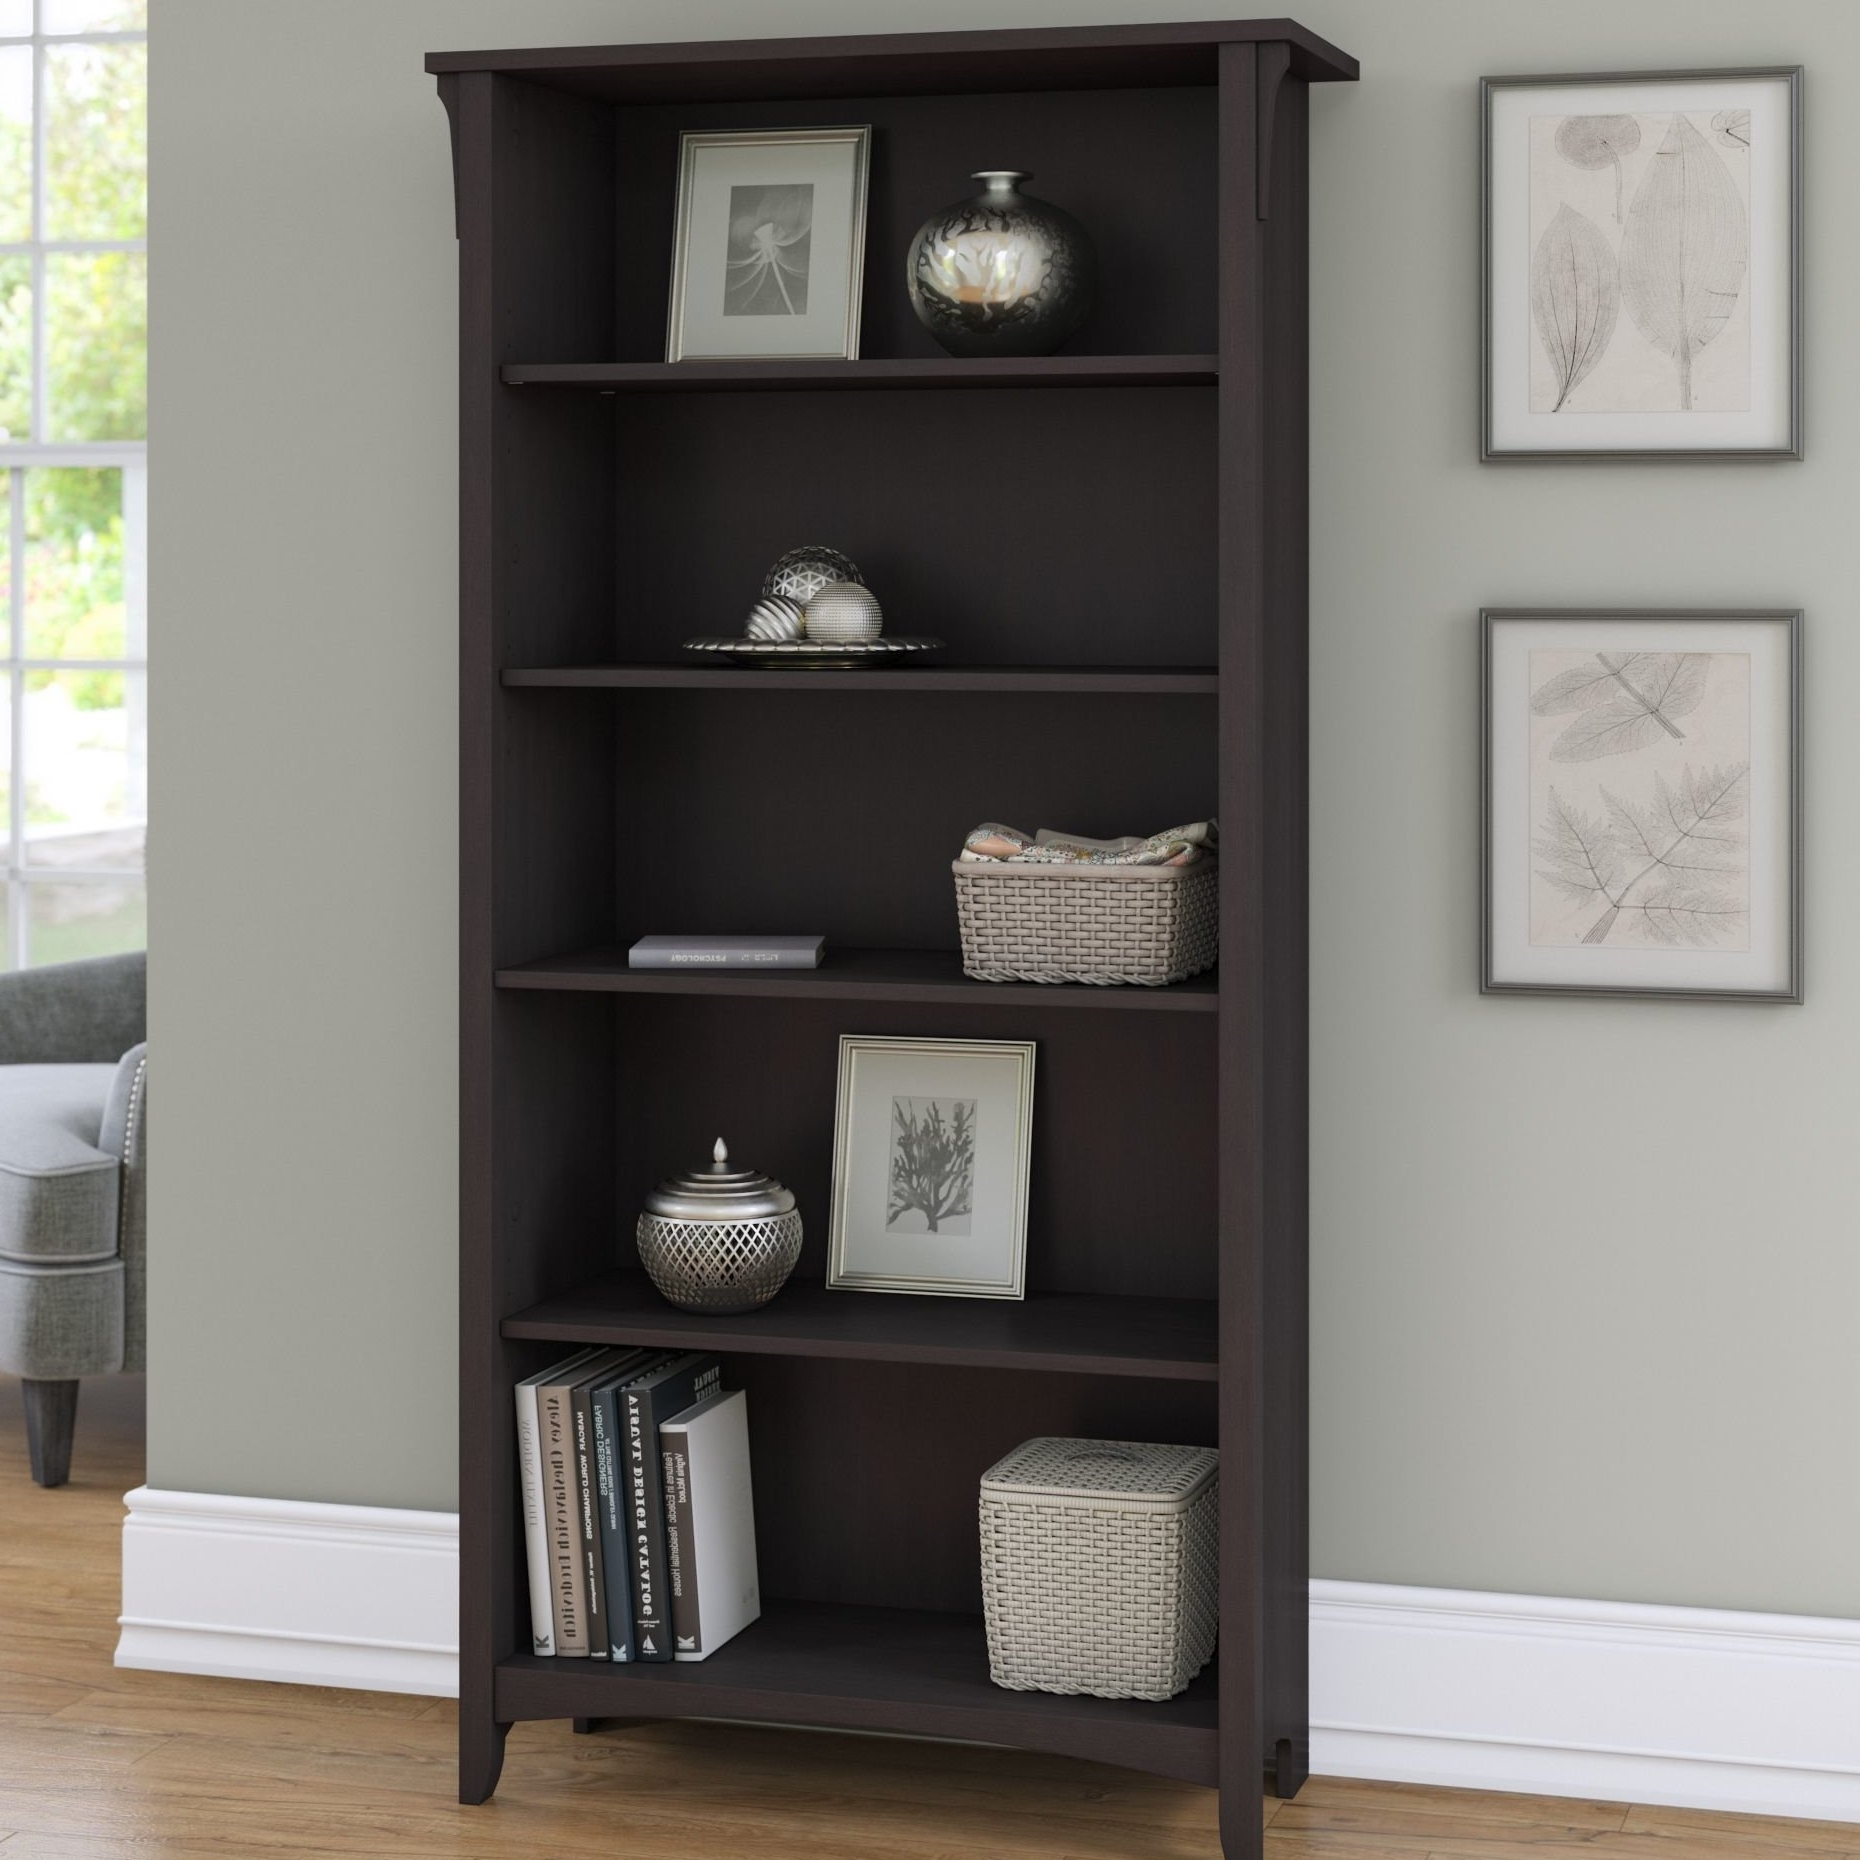 Most Popular Bookcases Cover In Alsatia 5 Shelf (View 15 of 15)